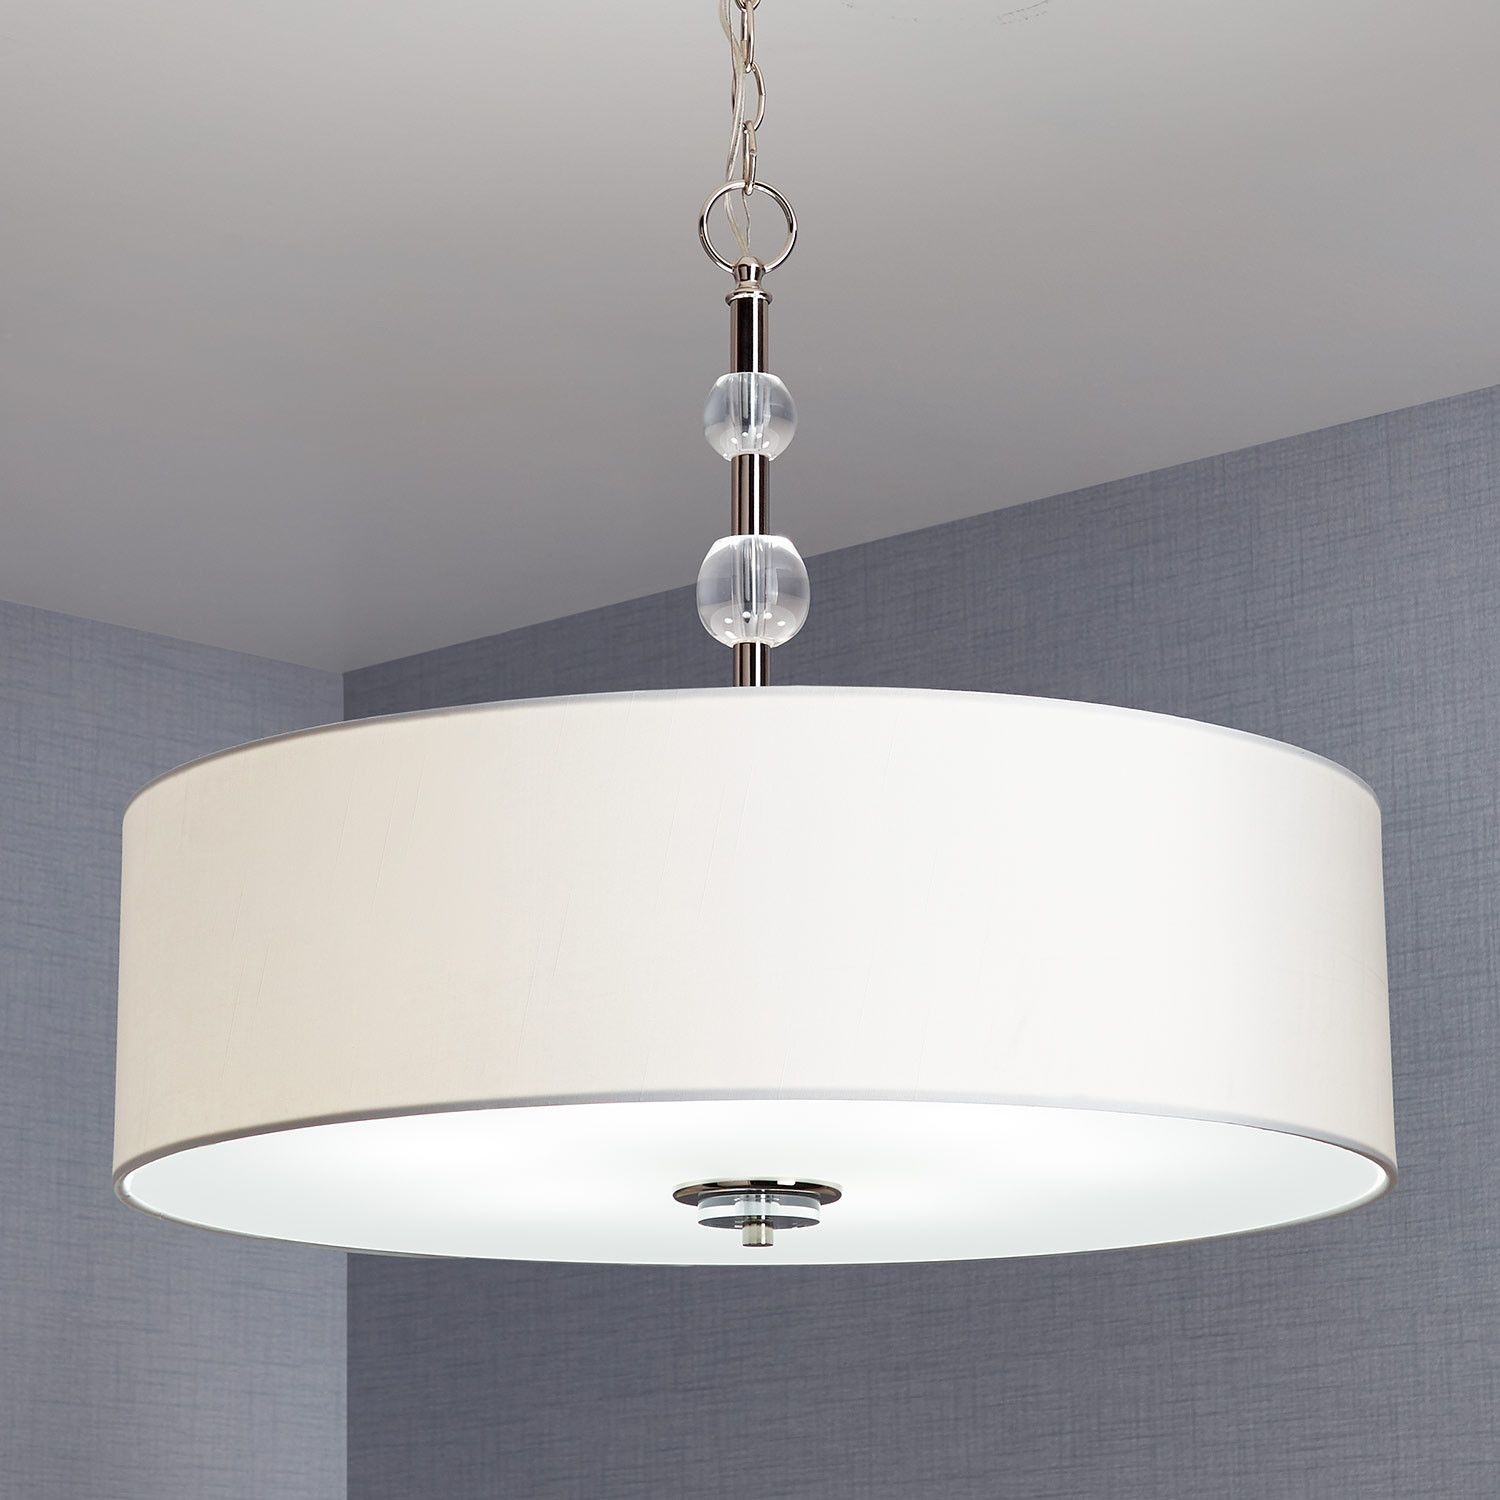 Custom 30 Inch And Larger Drum Pendant Light Fixture Extra Large Lamp Shades Drum Shade Chandelier Drum Light Fixture